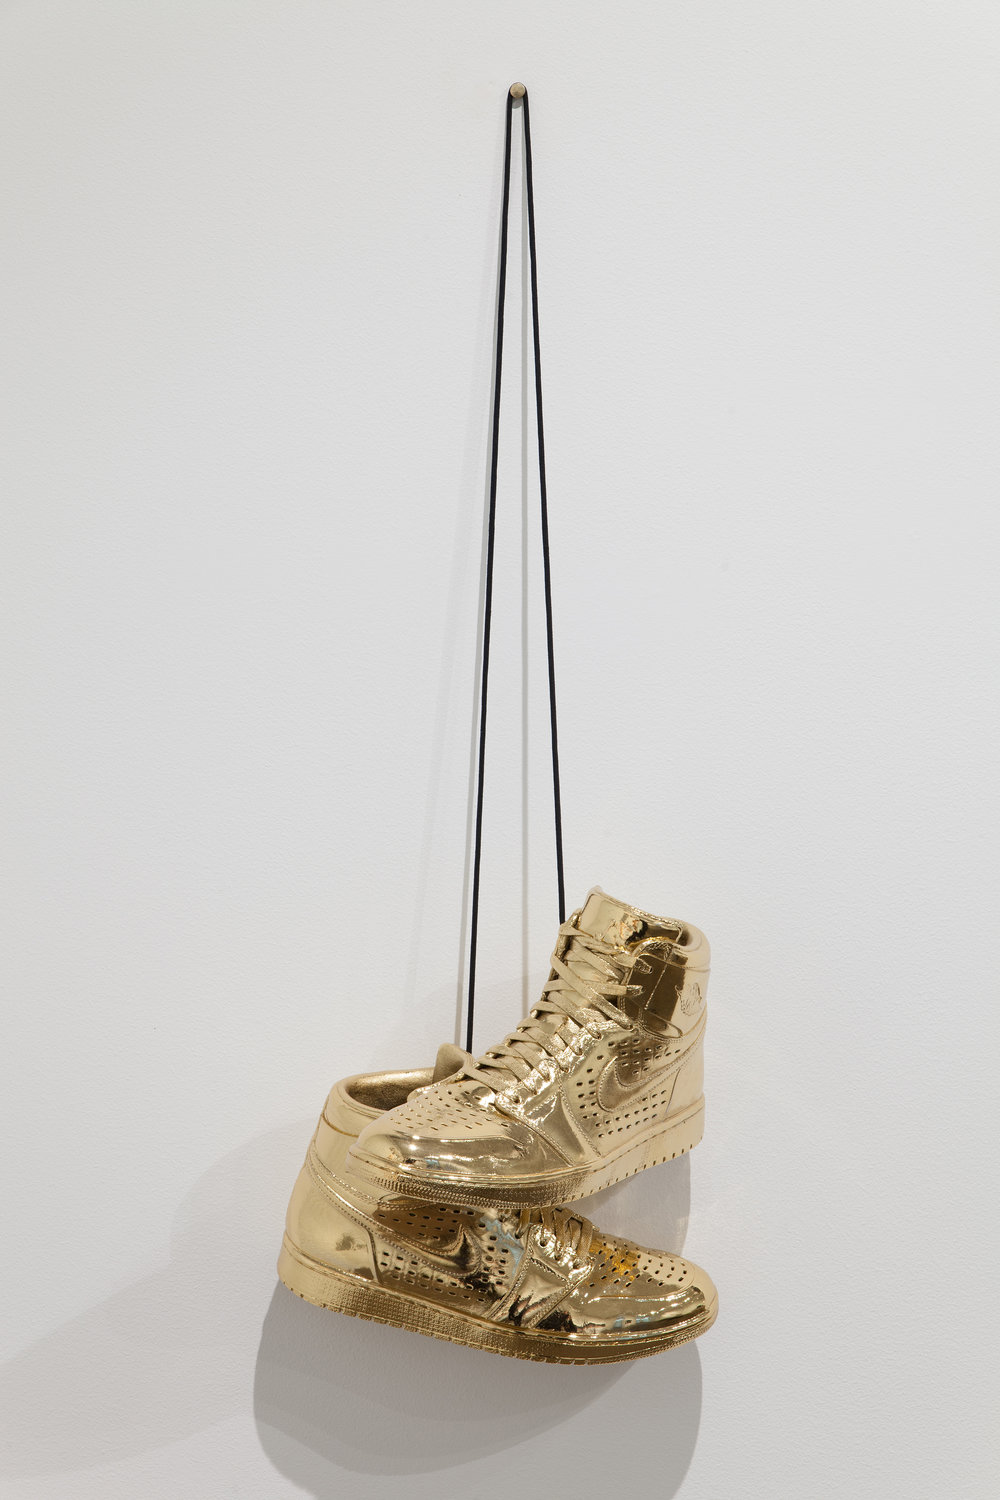 Kendell Carter,  Effigy for a New Normalcy VII , 2017. 14k gold plated, bronzed Air Jordans. Photo courtesy of Michael DeFilippo. From upcoming exhibition   RESPECT:   Hip-Hop Style & Wisdom .